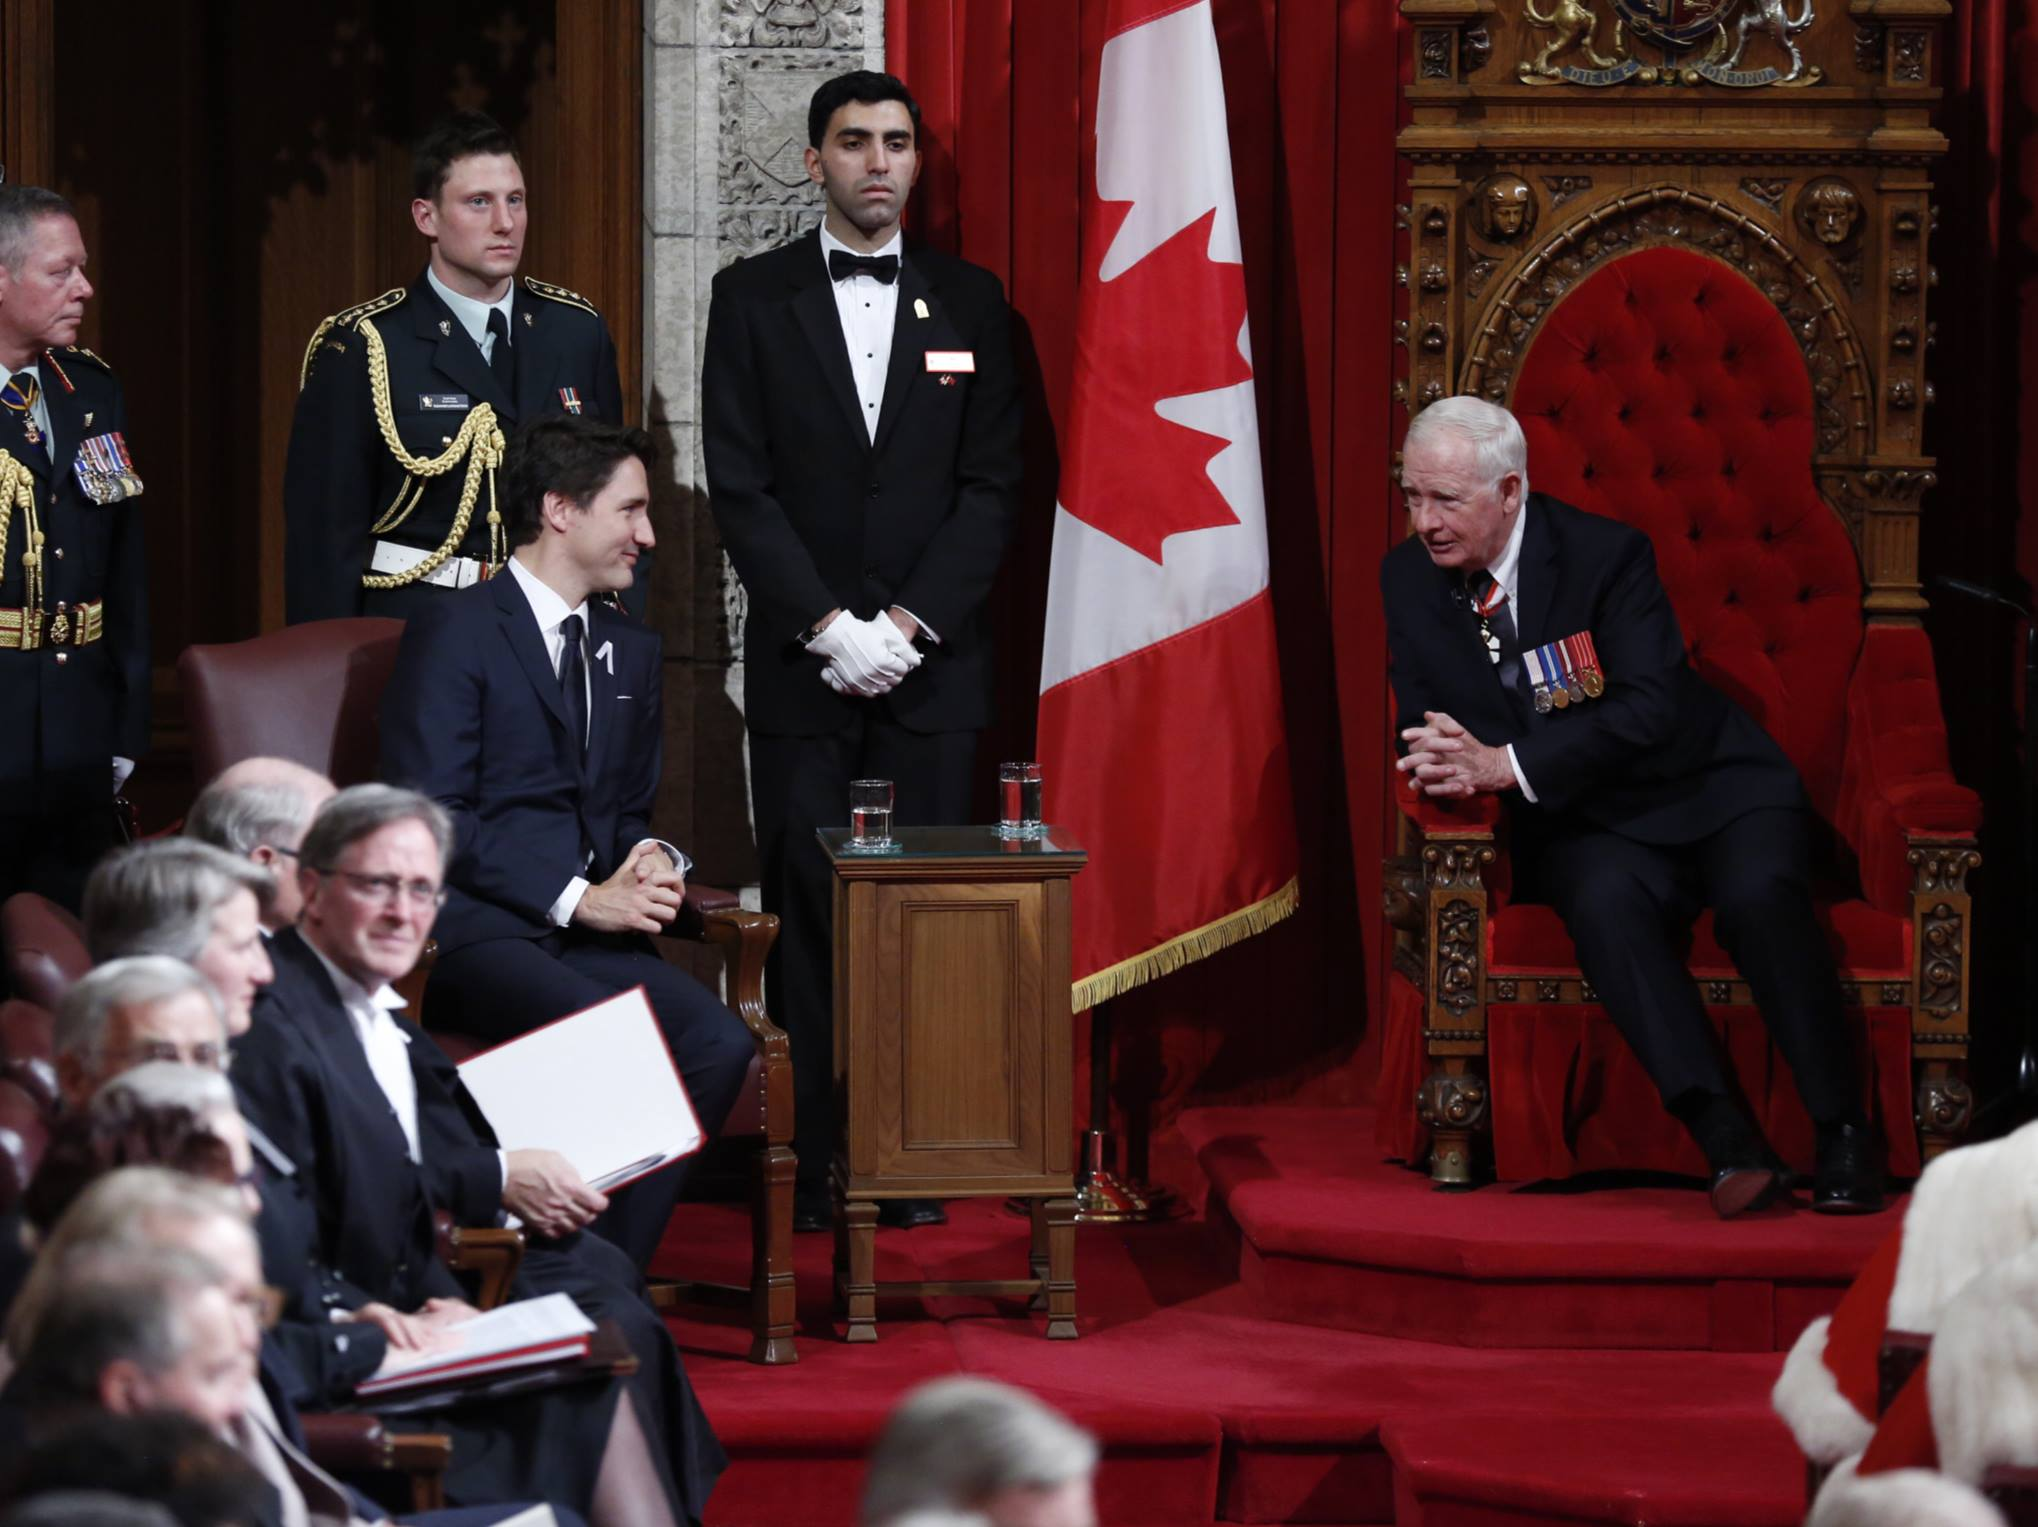 Prime Minister Justin Trudeau and Gov. Gen. David Johnston at the Senate chamber. (Photo from PM Trudeau's official Facebook page)